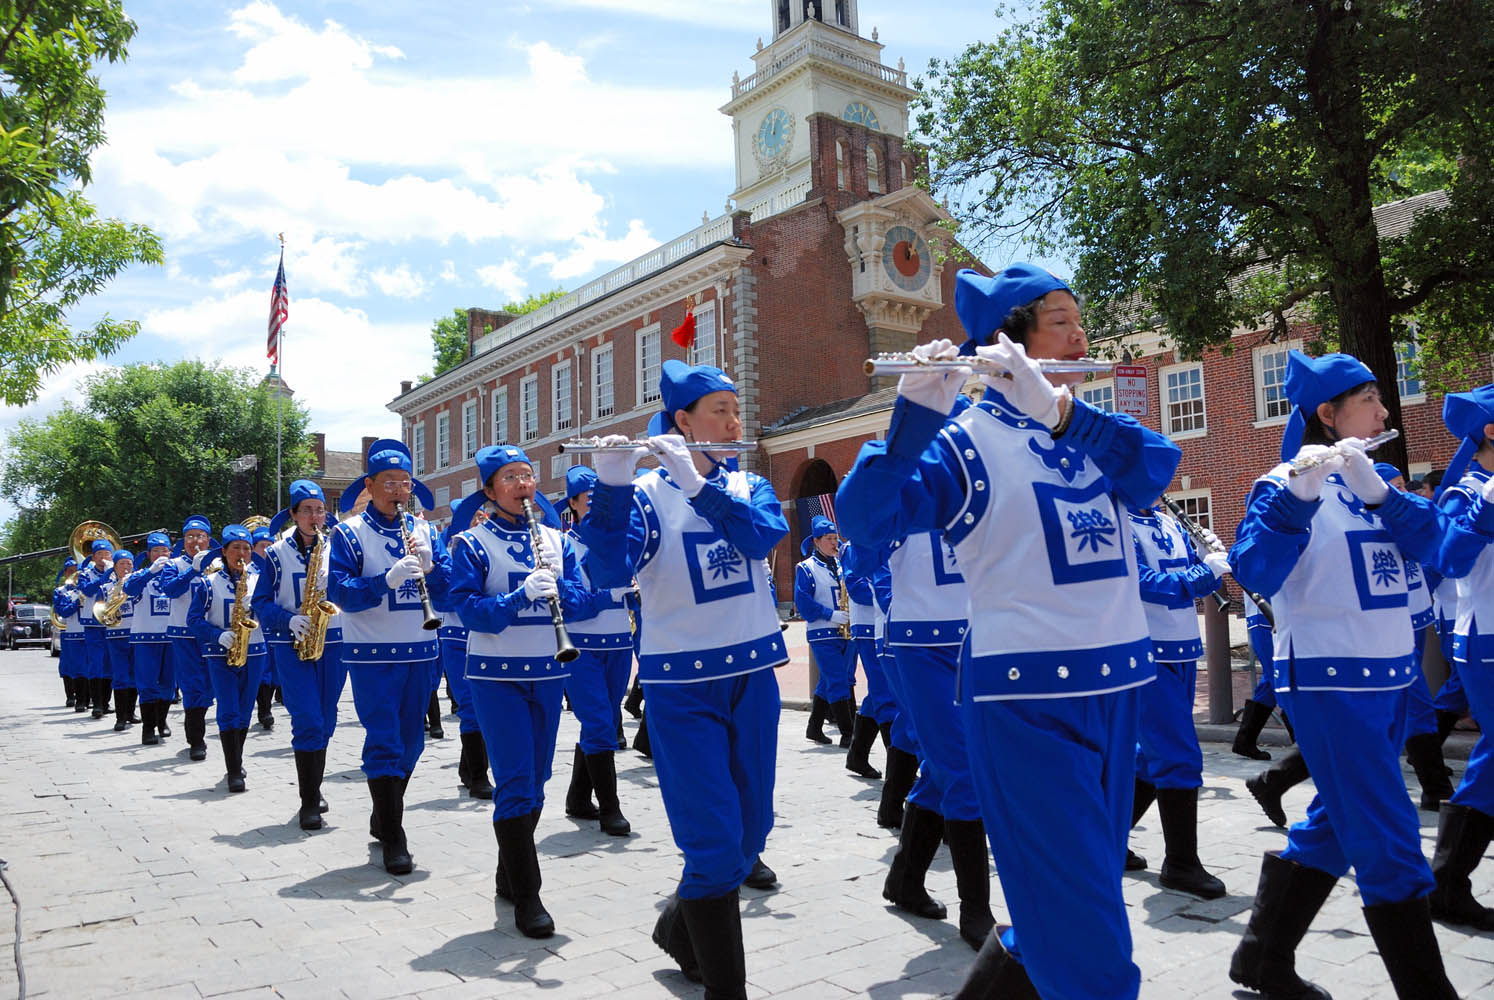 The Divine Land Marching Band participates in the celebration of the 233th birthday of the America. The band members march in front of the Independence Hall.